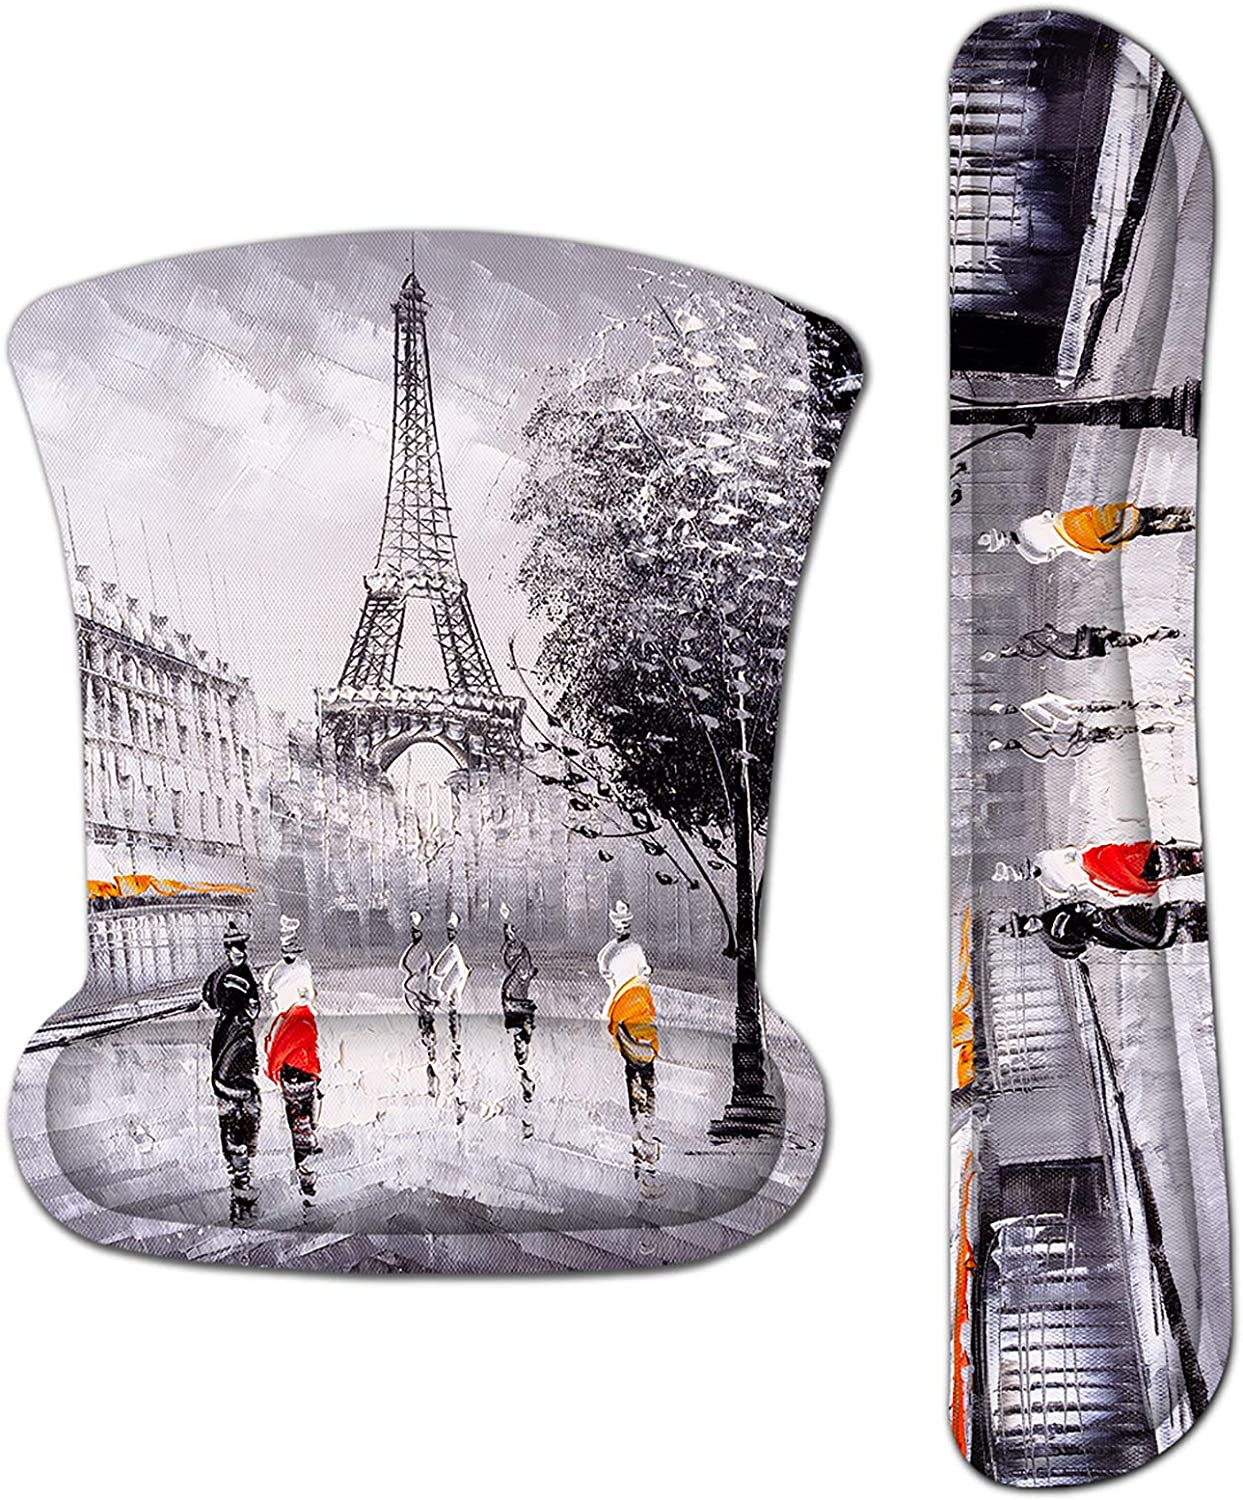 Mouse Pad with Wrist Support and Keyboard Wrist Rest Pad Set,Ergonomic Mouse Pads for Computers Laptop,Non-Slip Comfortable Mousepad w/Raised Memory Foam for Easy Typing Pain Relief (Eiffel Tower)